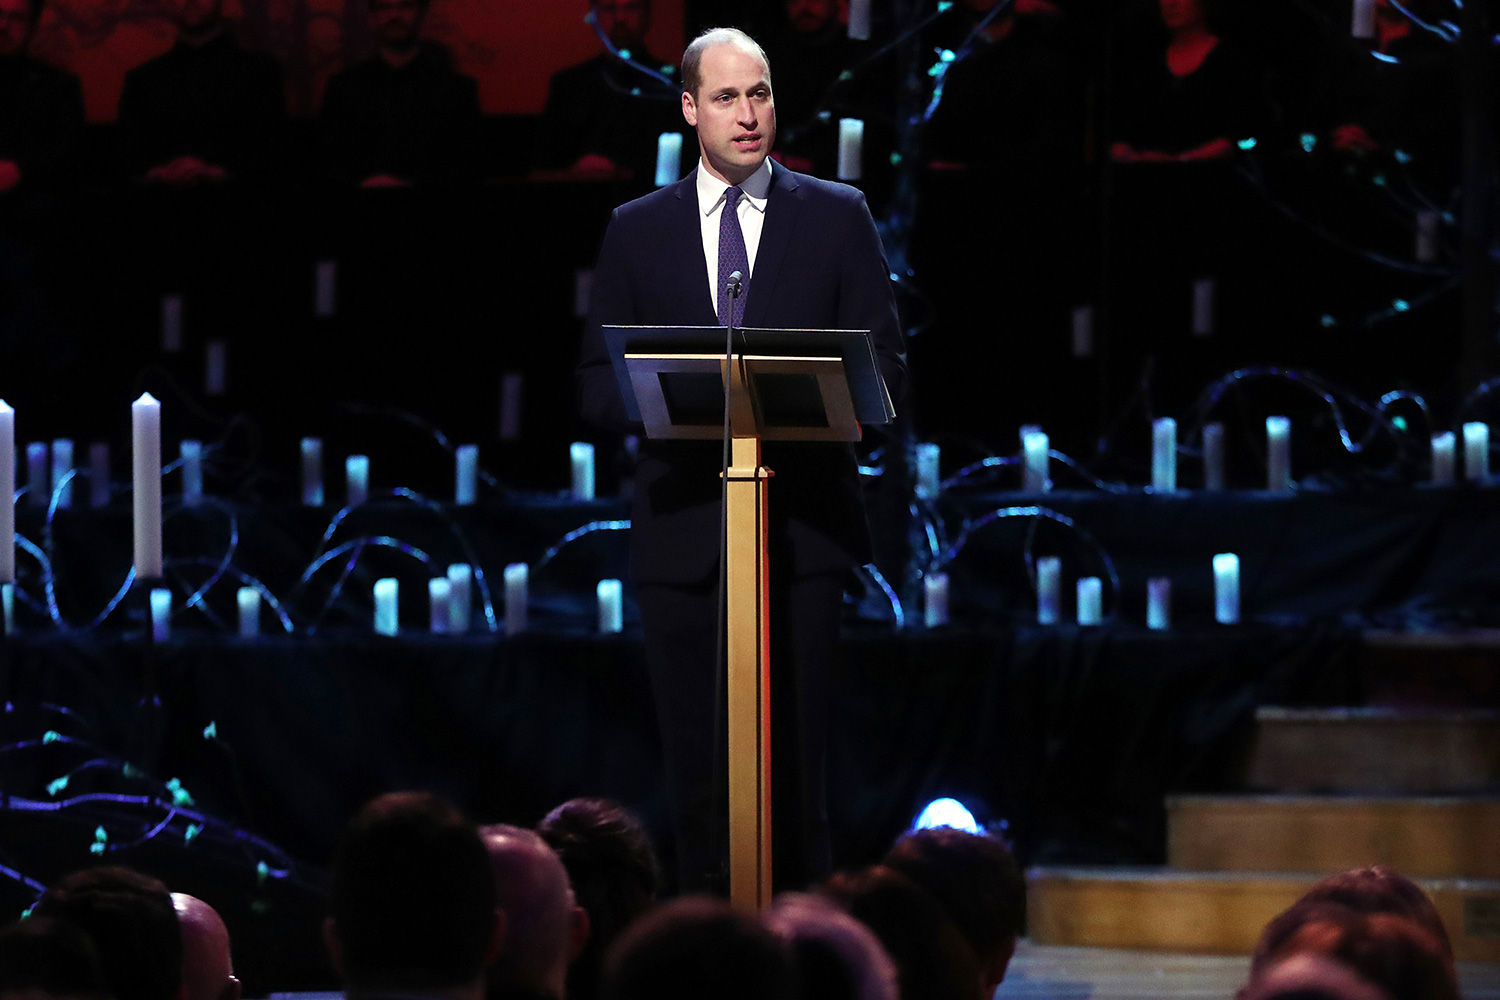 Prince William, Duke of Cambridge speaks during the UK Holocaust Memorial Day Commemorative Ceremony in Westminster on January 27, 2020 in London, England